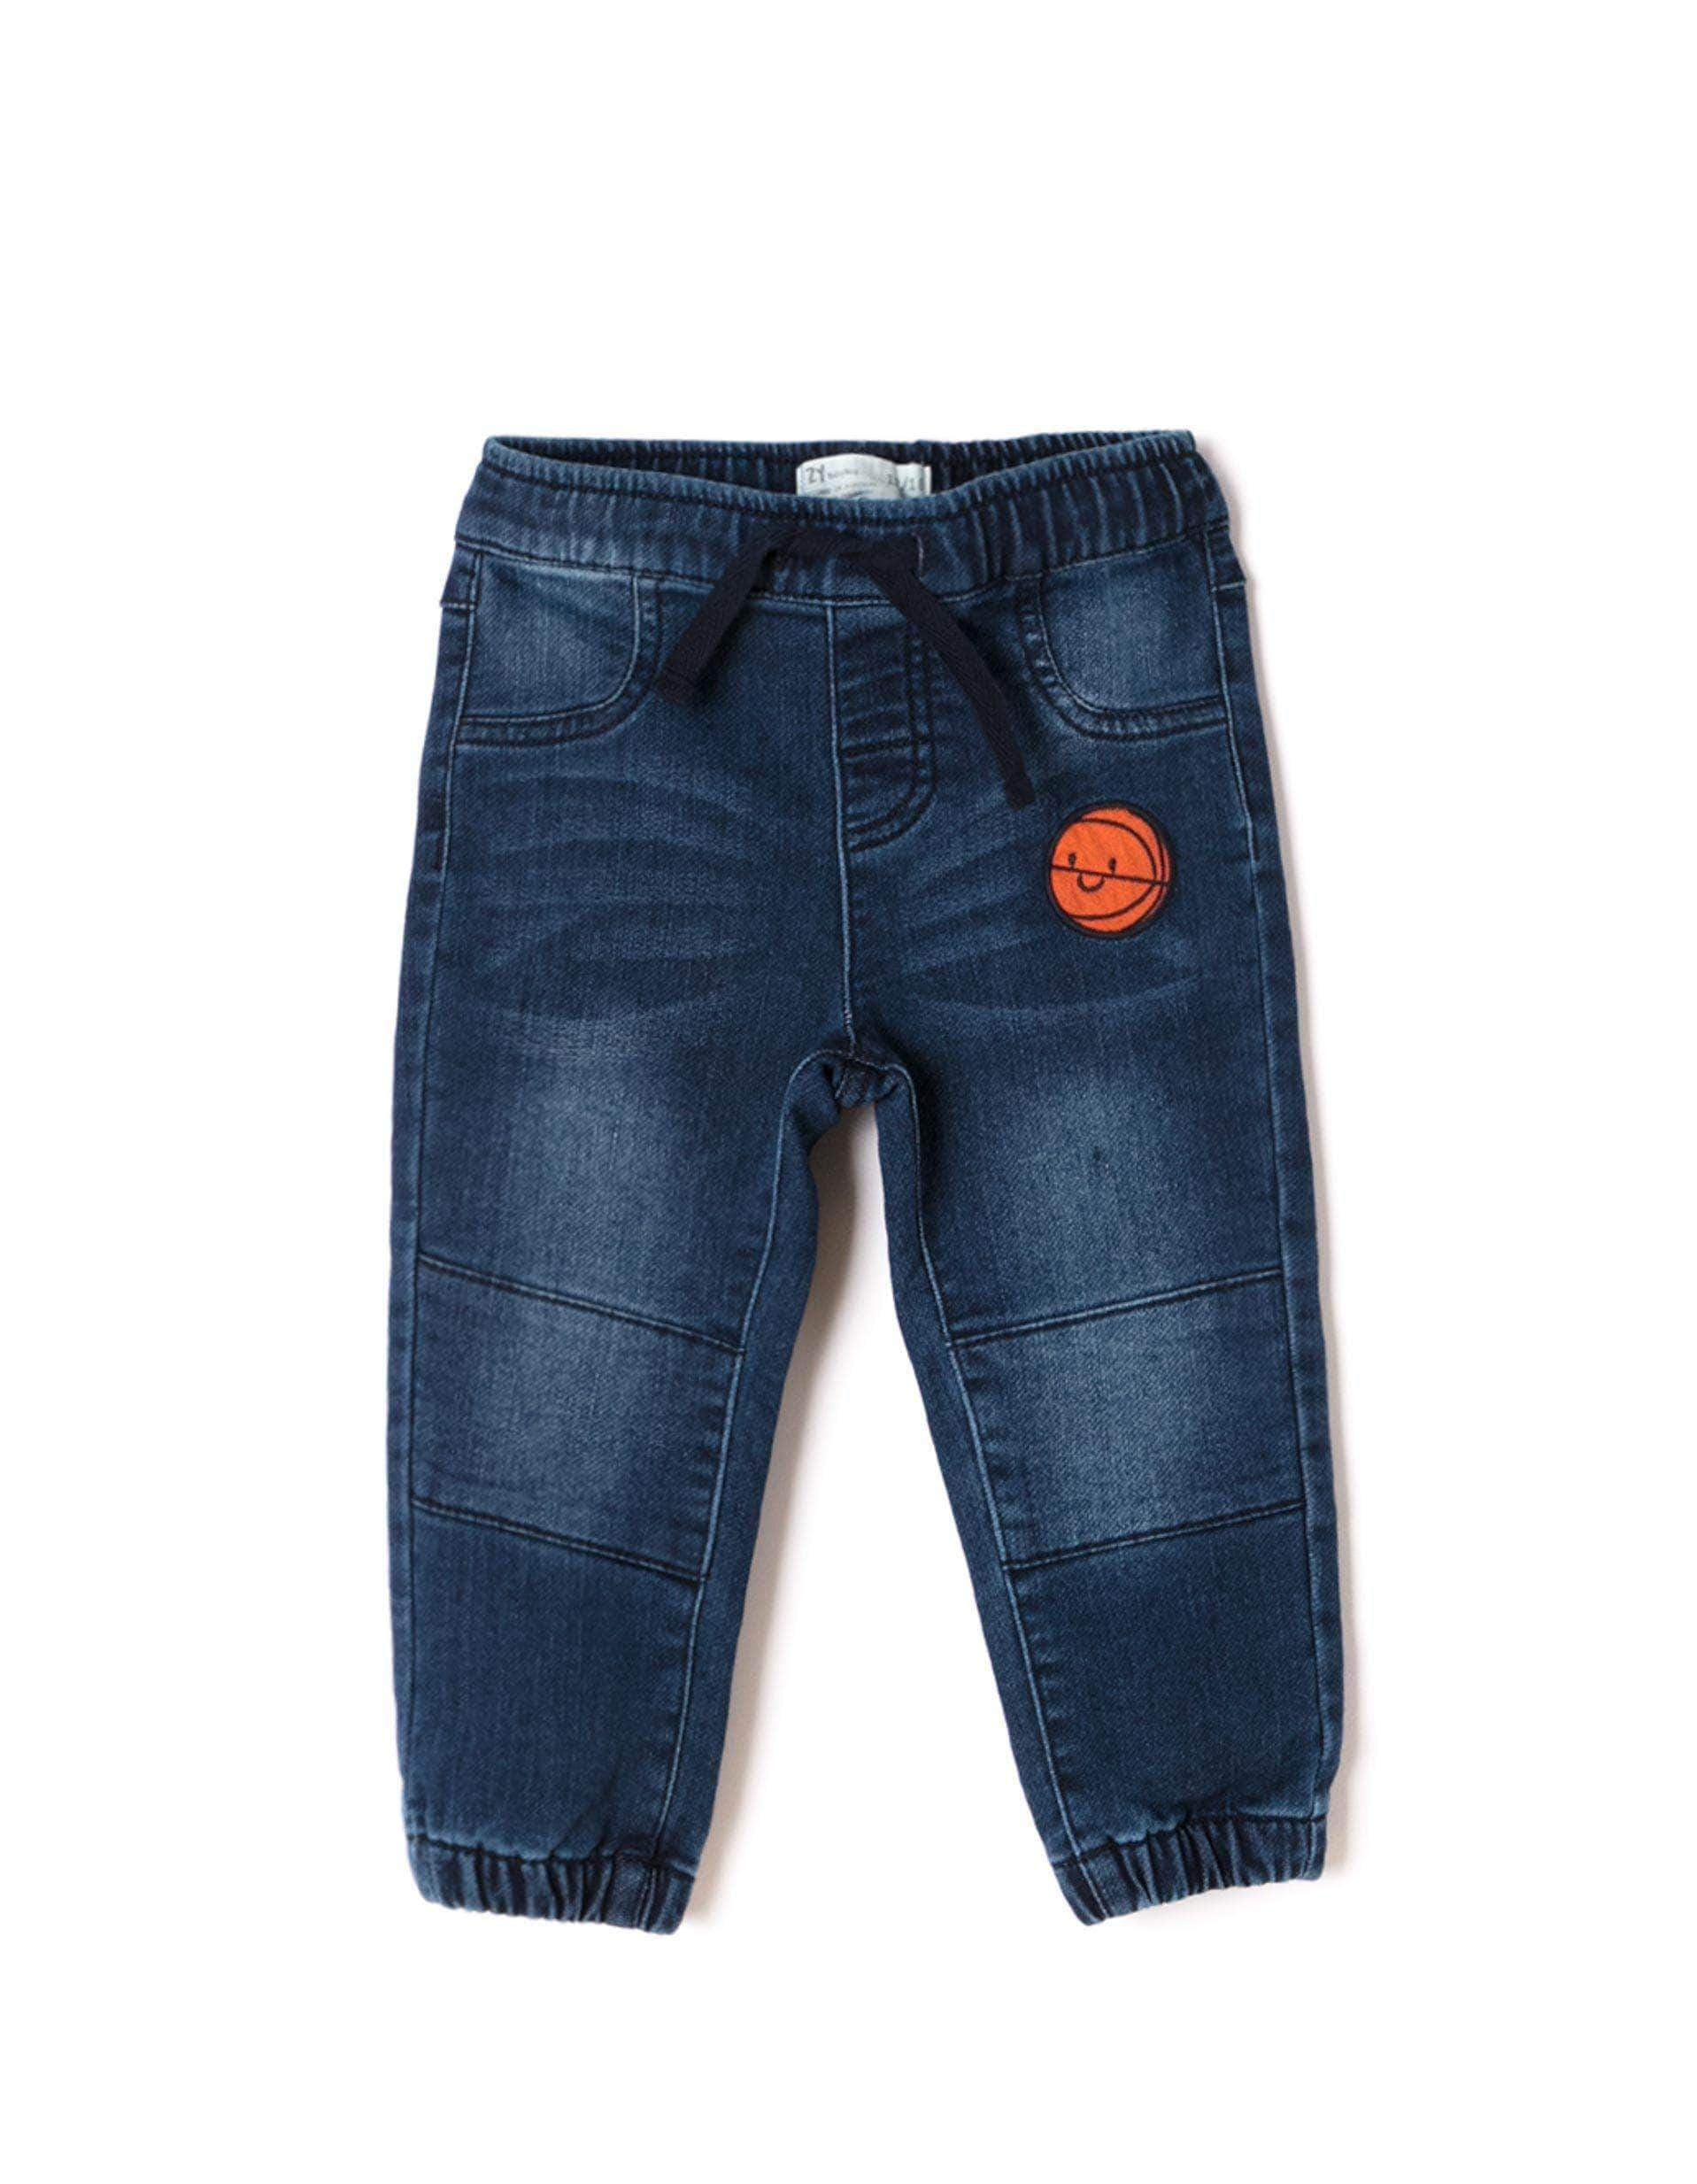 Amazon ZIPPY Pantalón Vaquero Jogger Fit Deportivos, Azul (Medium Blue Denim 2565), 80 (Tamaño del Fabricante:12/18M) para Bebés